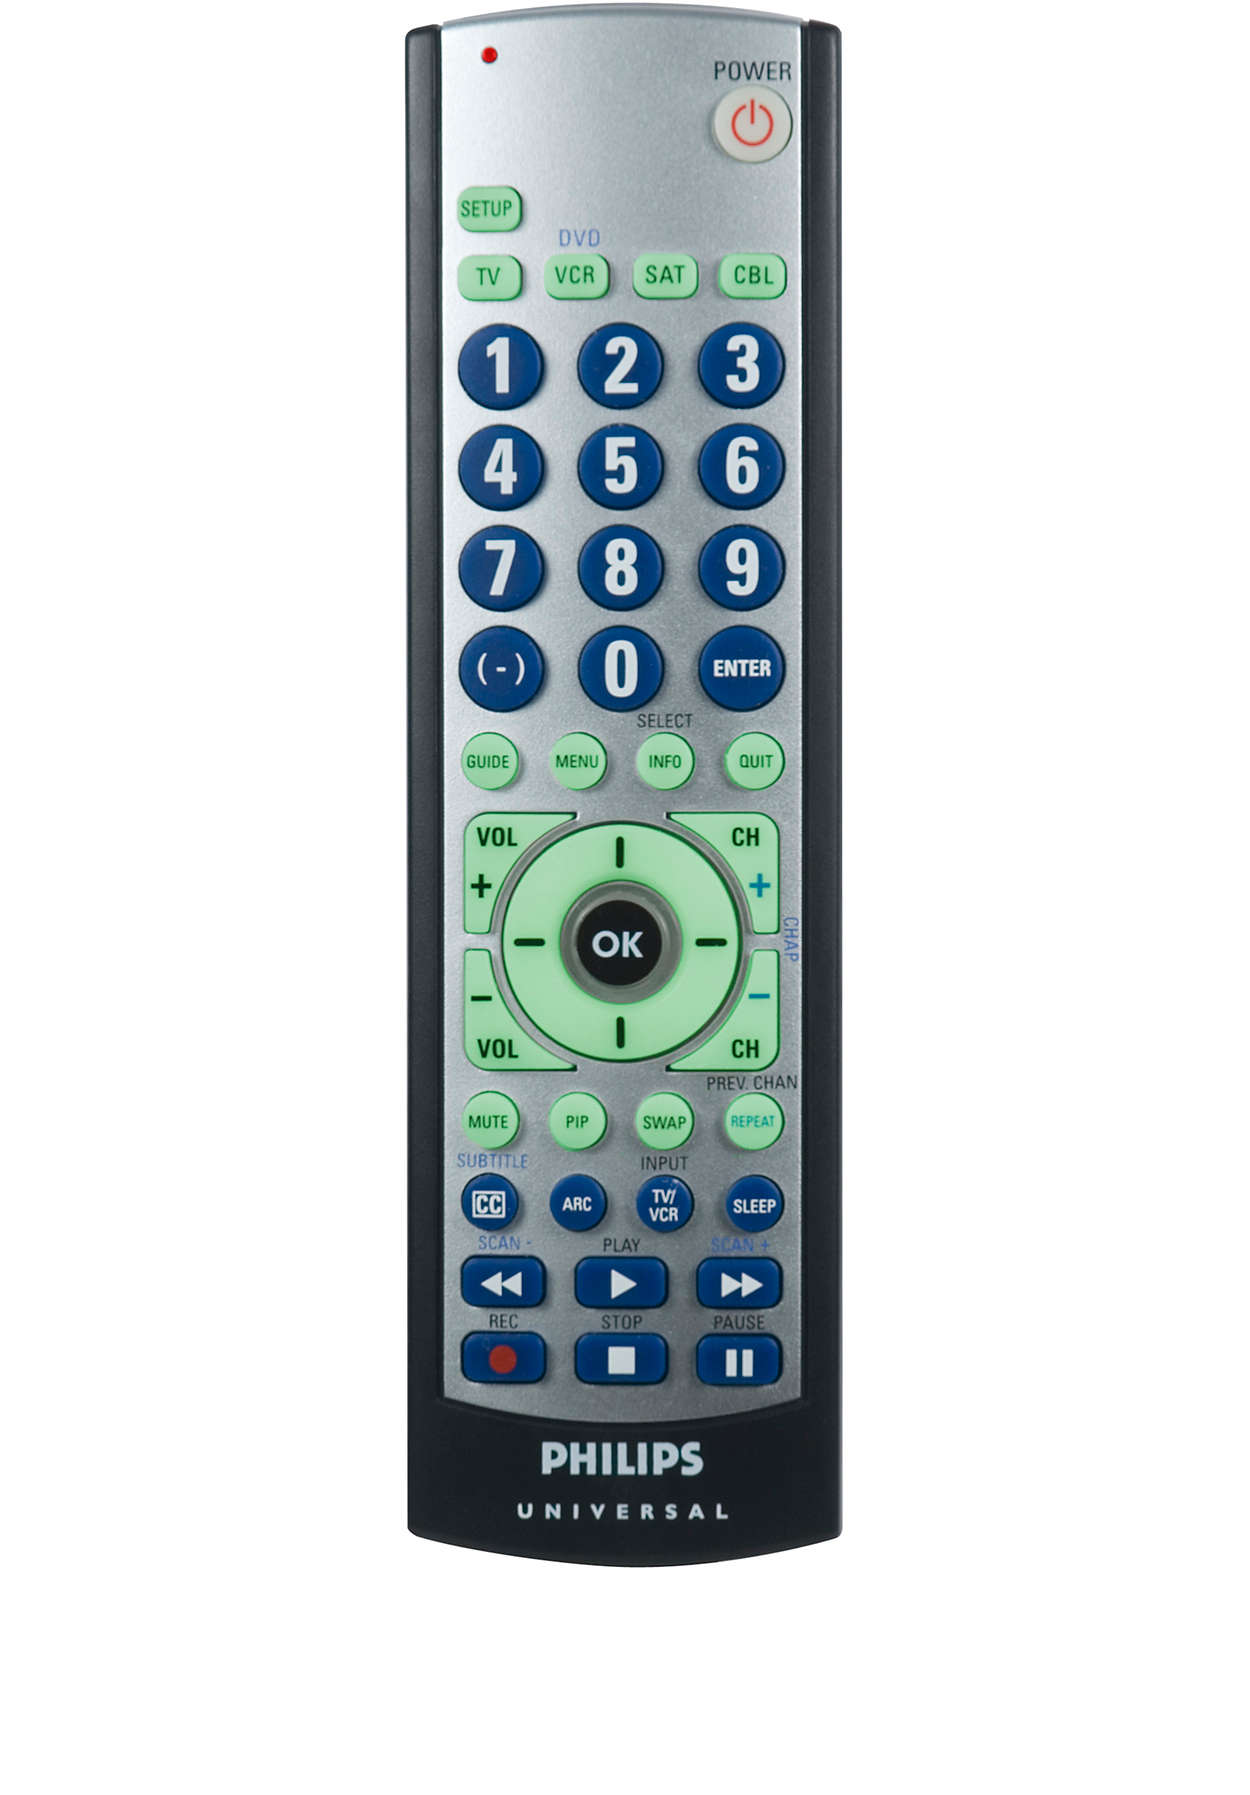 Replacement remote.